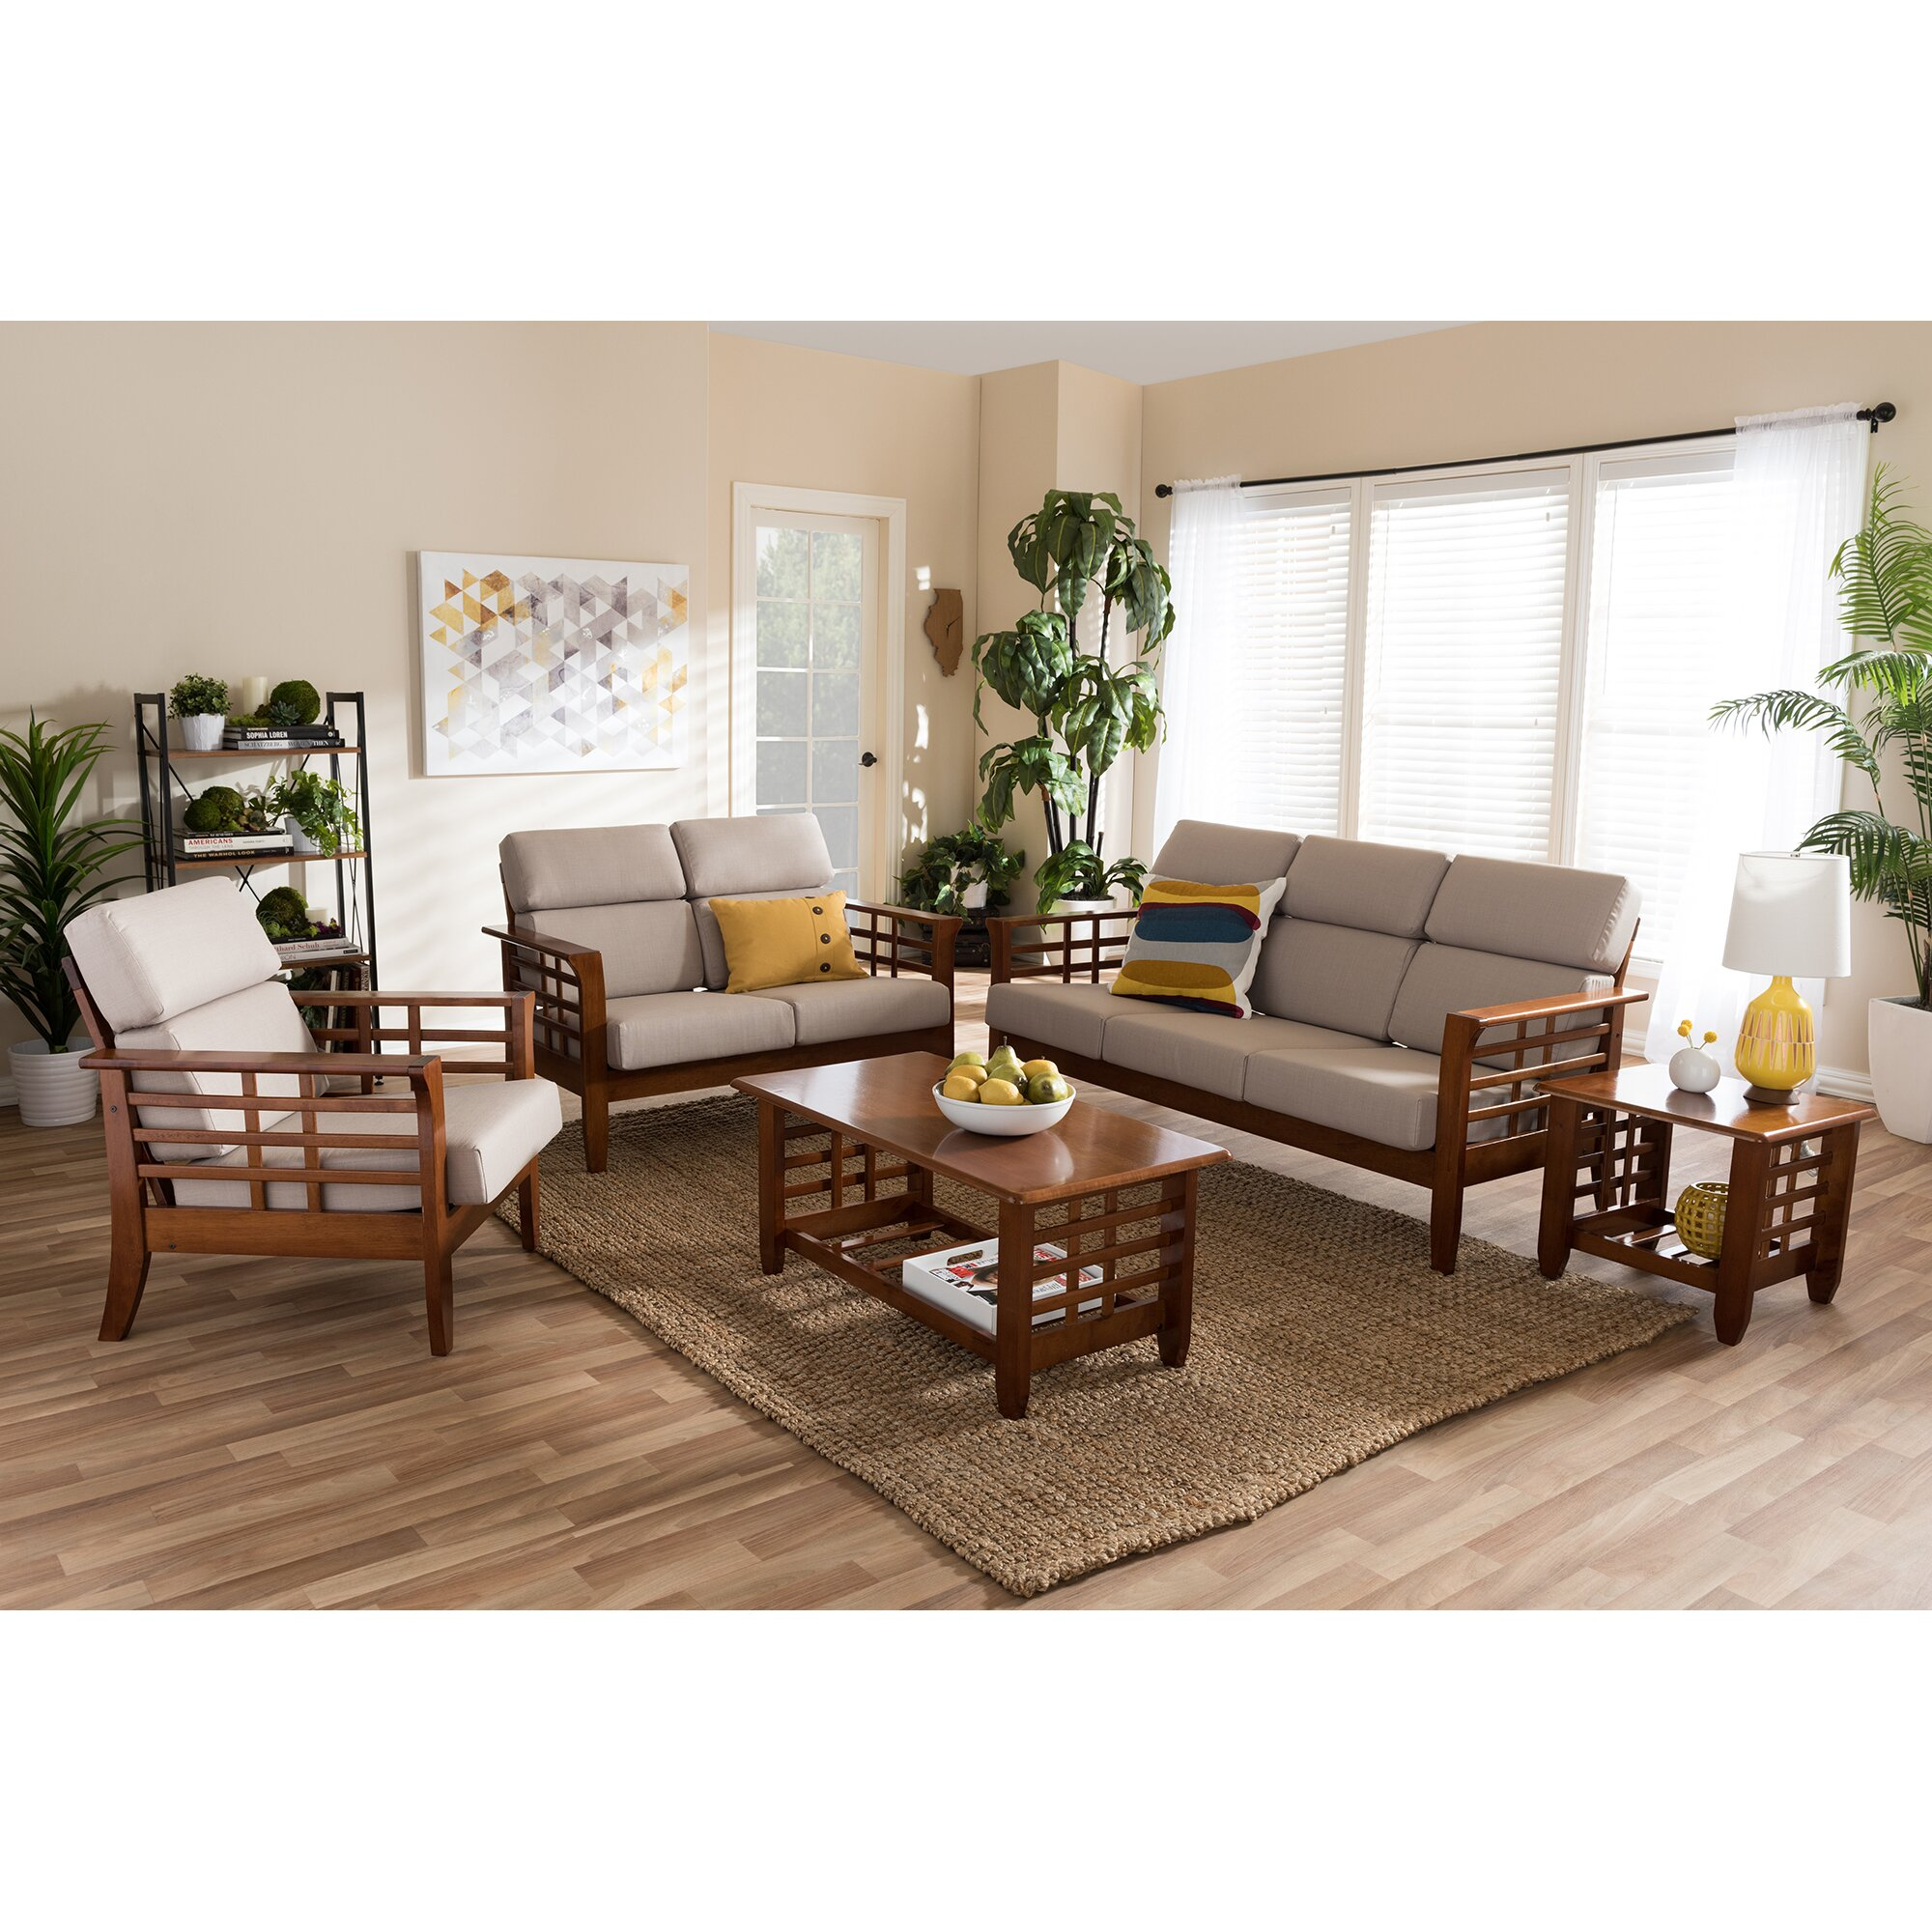 Latitude run aguon 5 piece living room set reviews wayfair for 5 piece living room set